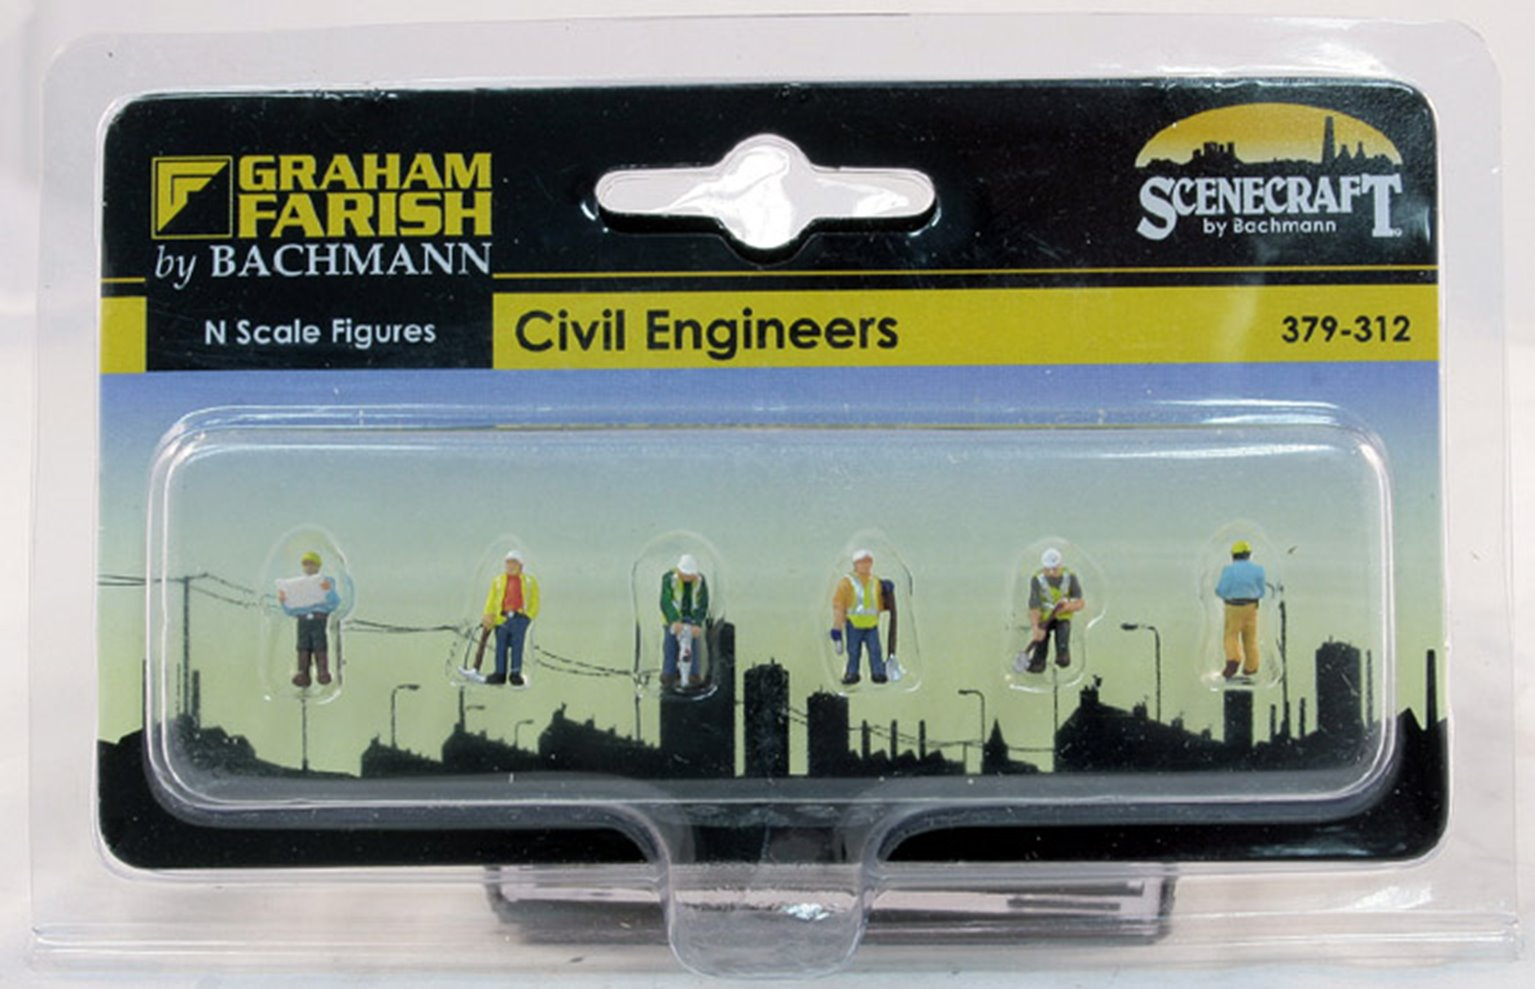 Figures - Civil Engineers